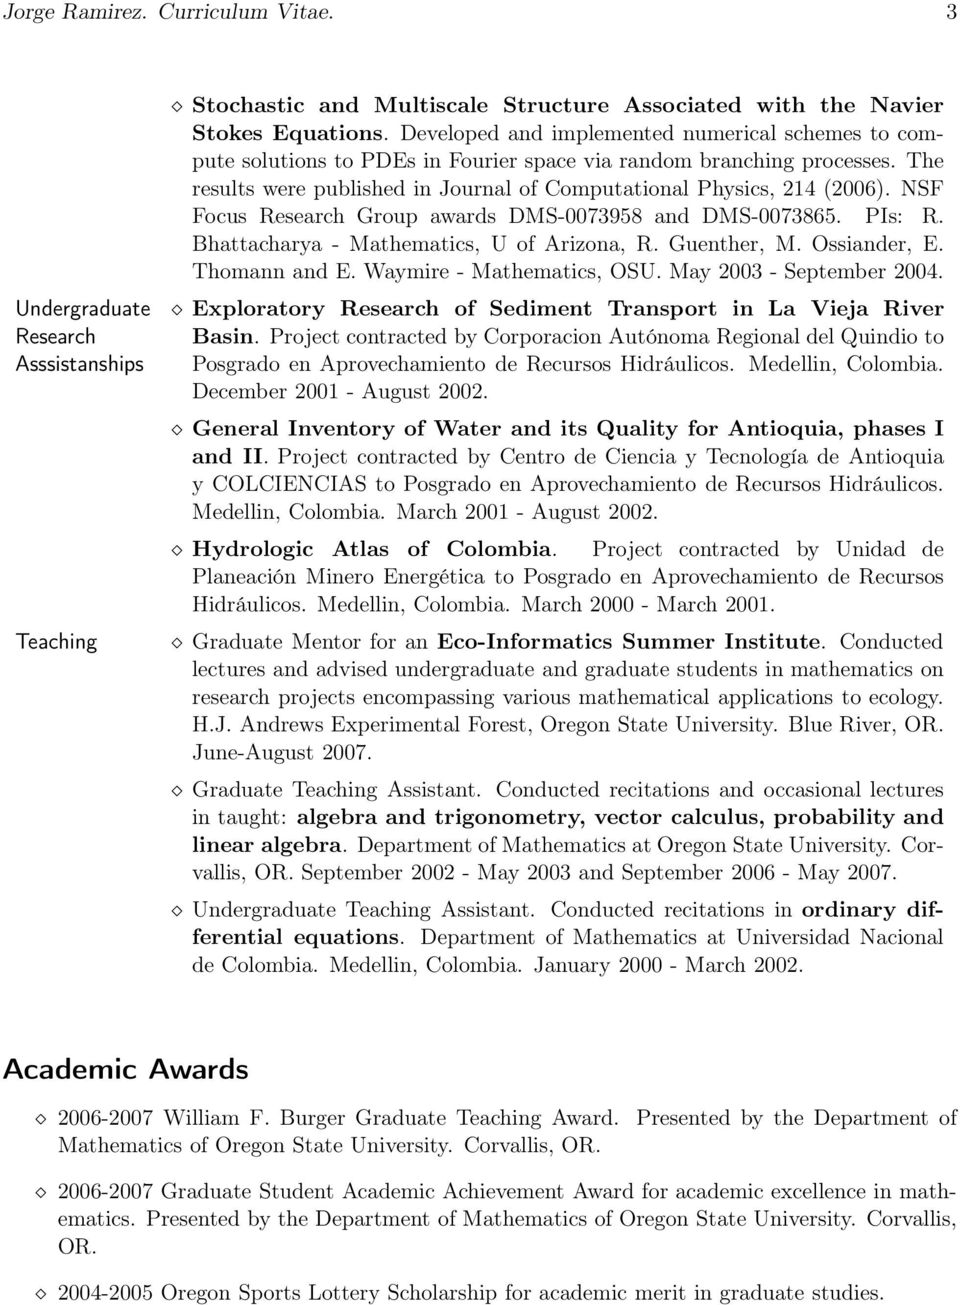 NSF Focus Research Group awards DMS-0073958 and DMS-0073865. PIs: R. Bhattacharya - Mathematics, U of Arizona, R. Guenther, M. Ossiander, E. Thomann and E. Waymire - Mathematics, OSU.